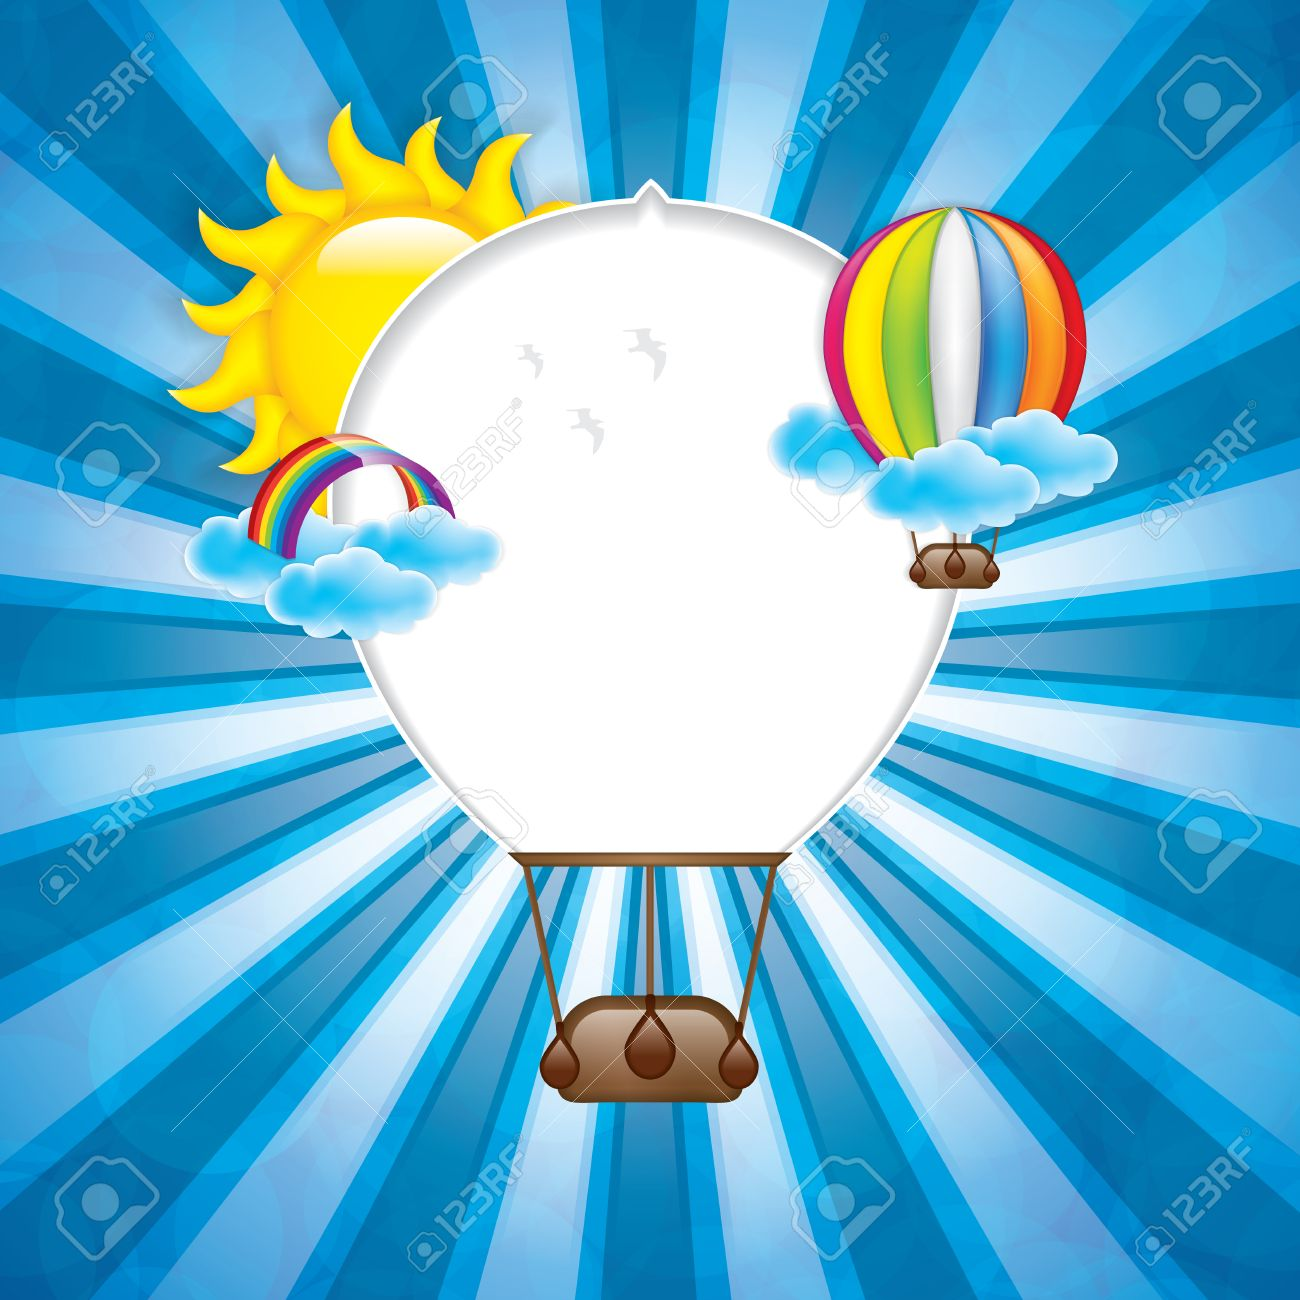 Spring Frame With Hot Air Balloon And Rainbowvector Royalty Free